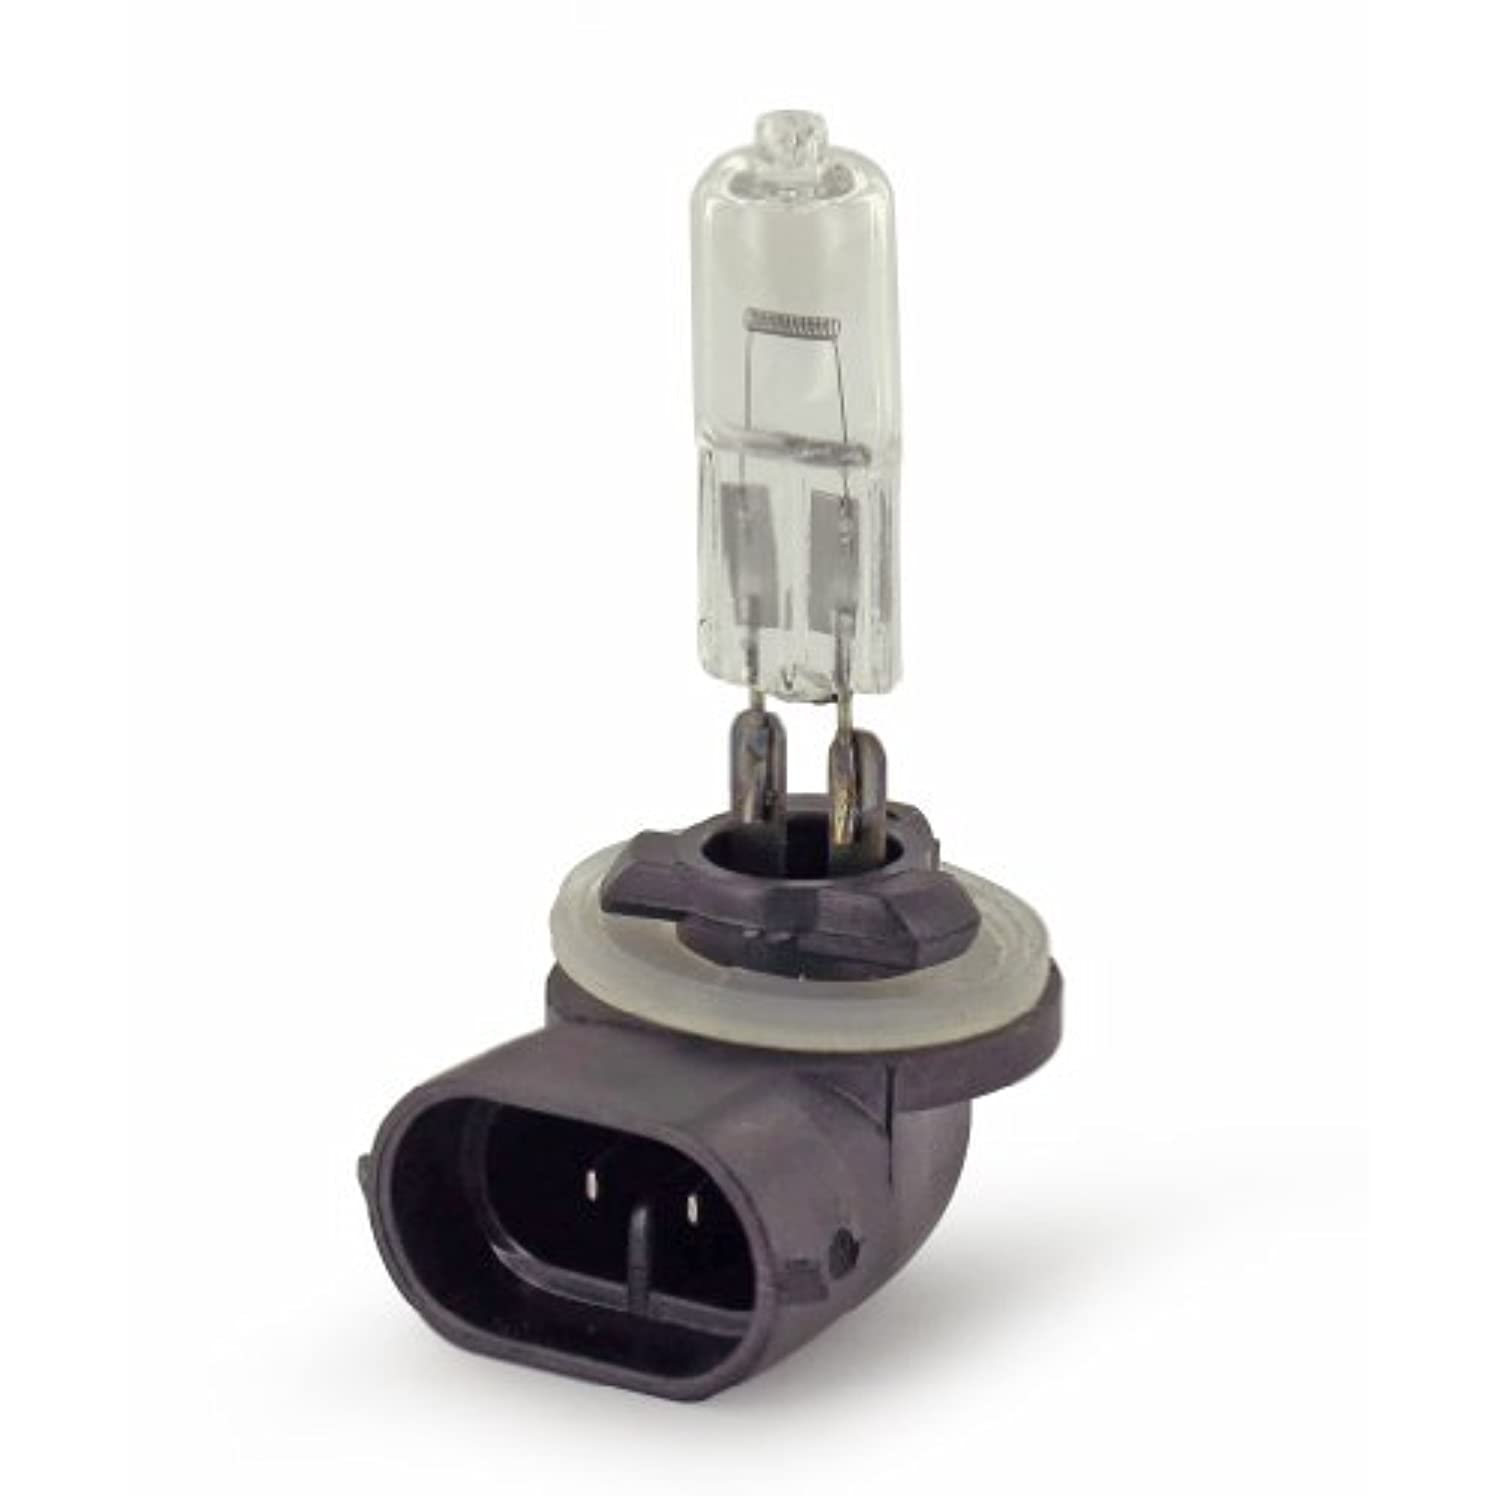 行商スーツケース試してみるIntella 1062038 GE 894 Bulb, 12.8V, 38W by Intella Liftparts Inc.